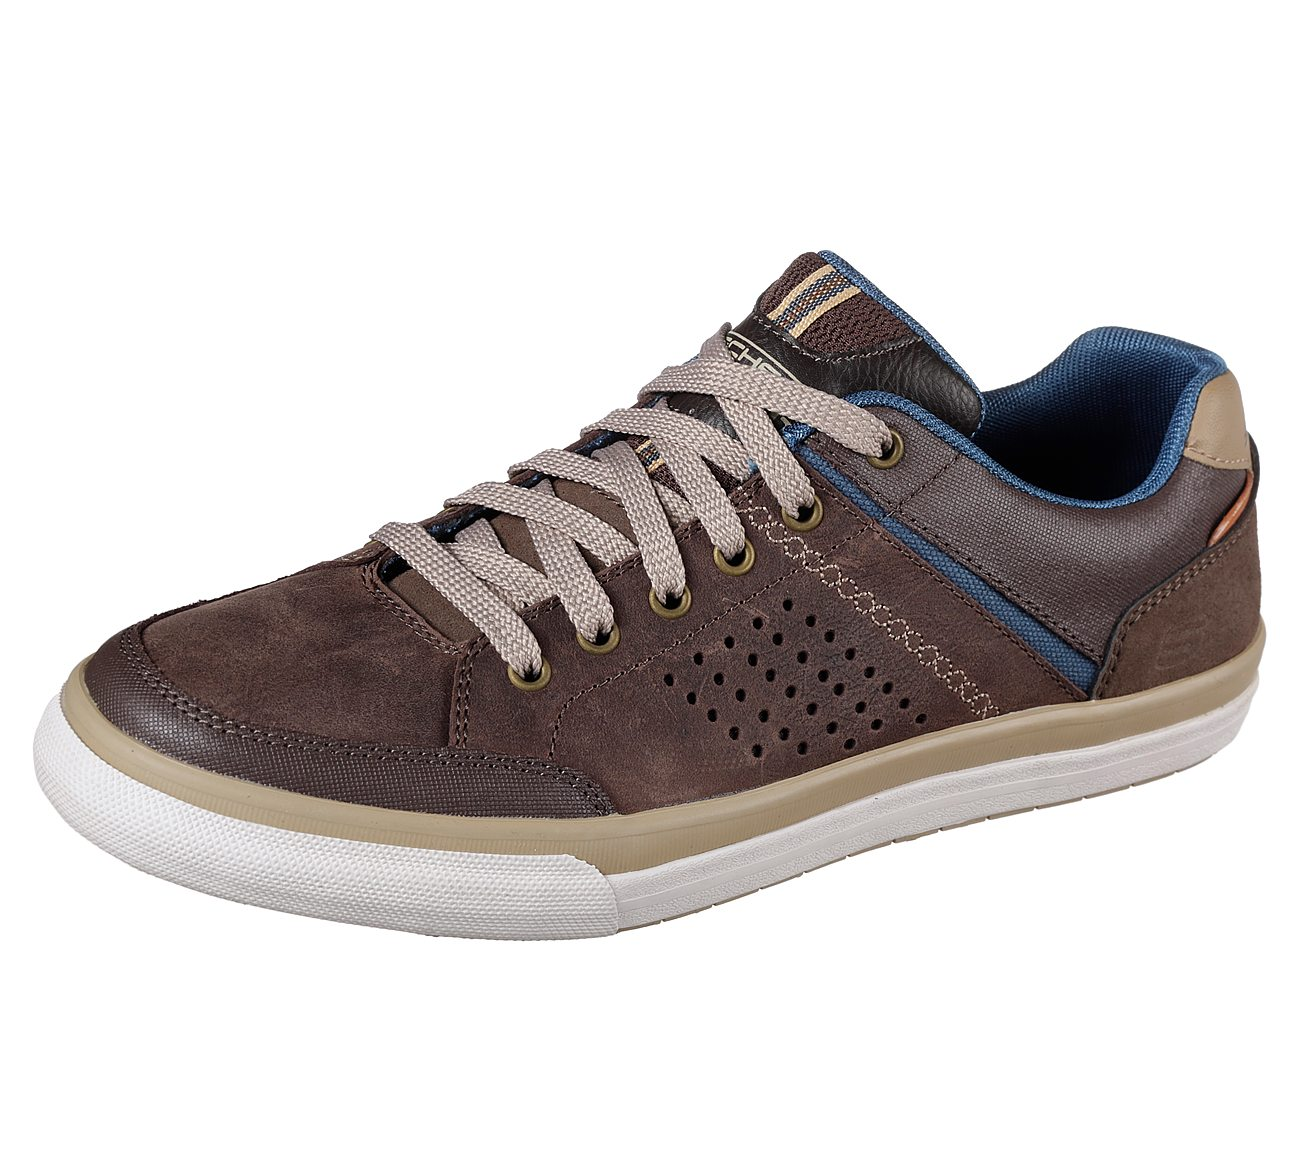 Buy SKECHERS Relaxed Fit: Diamondback